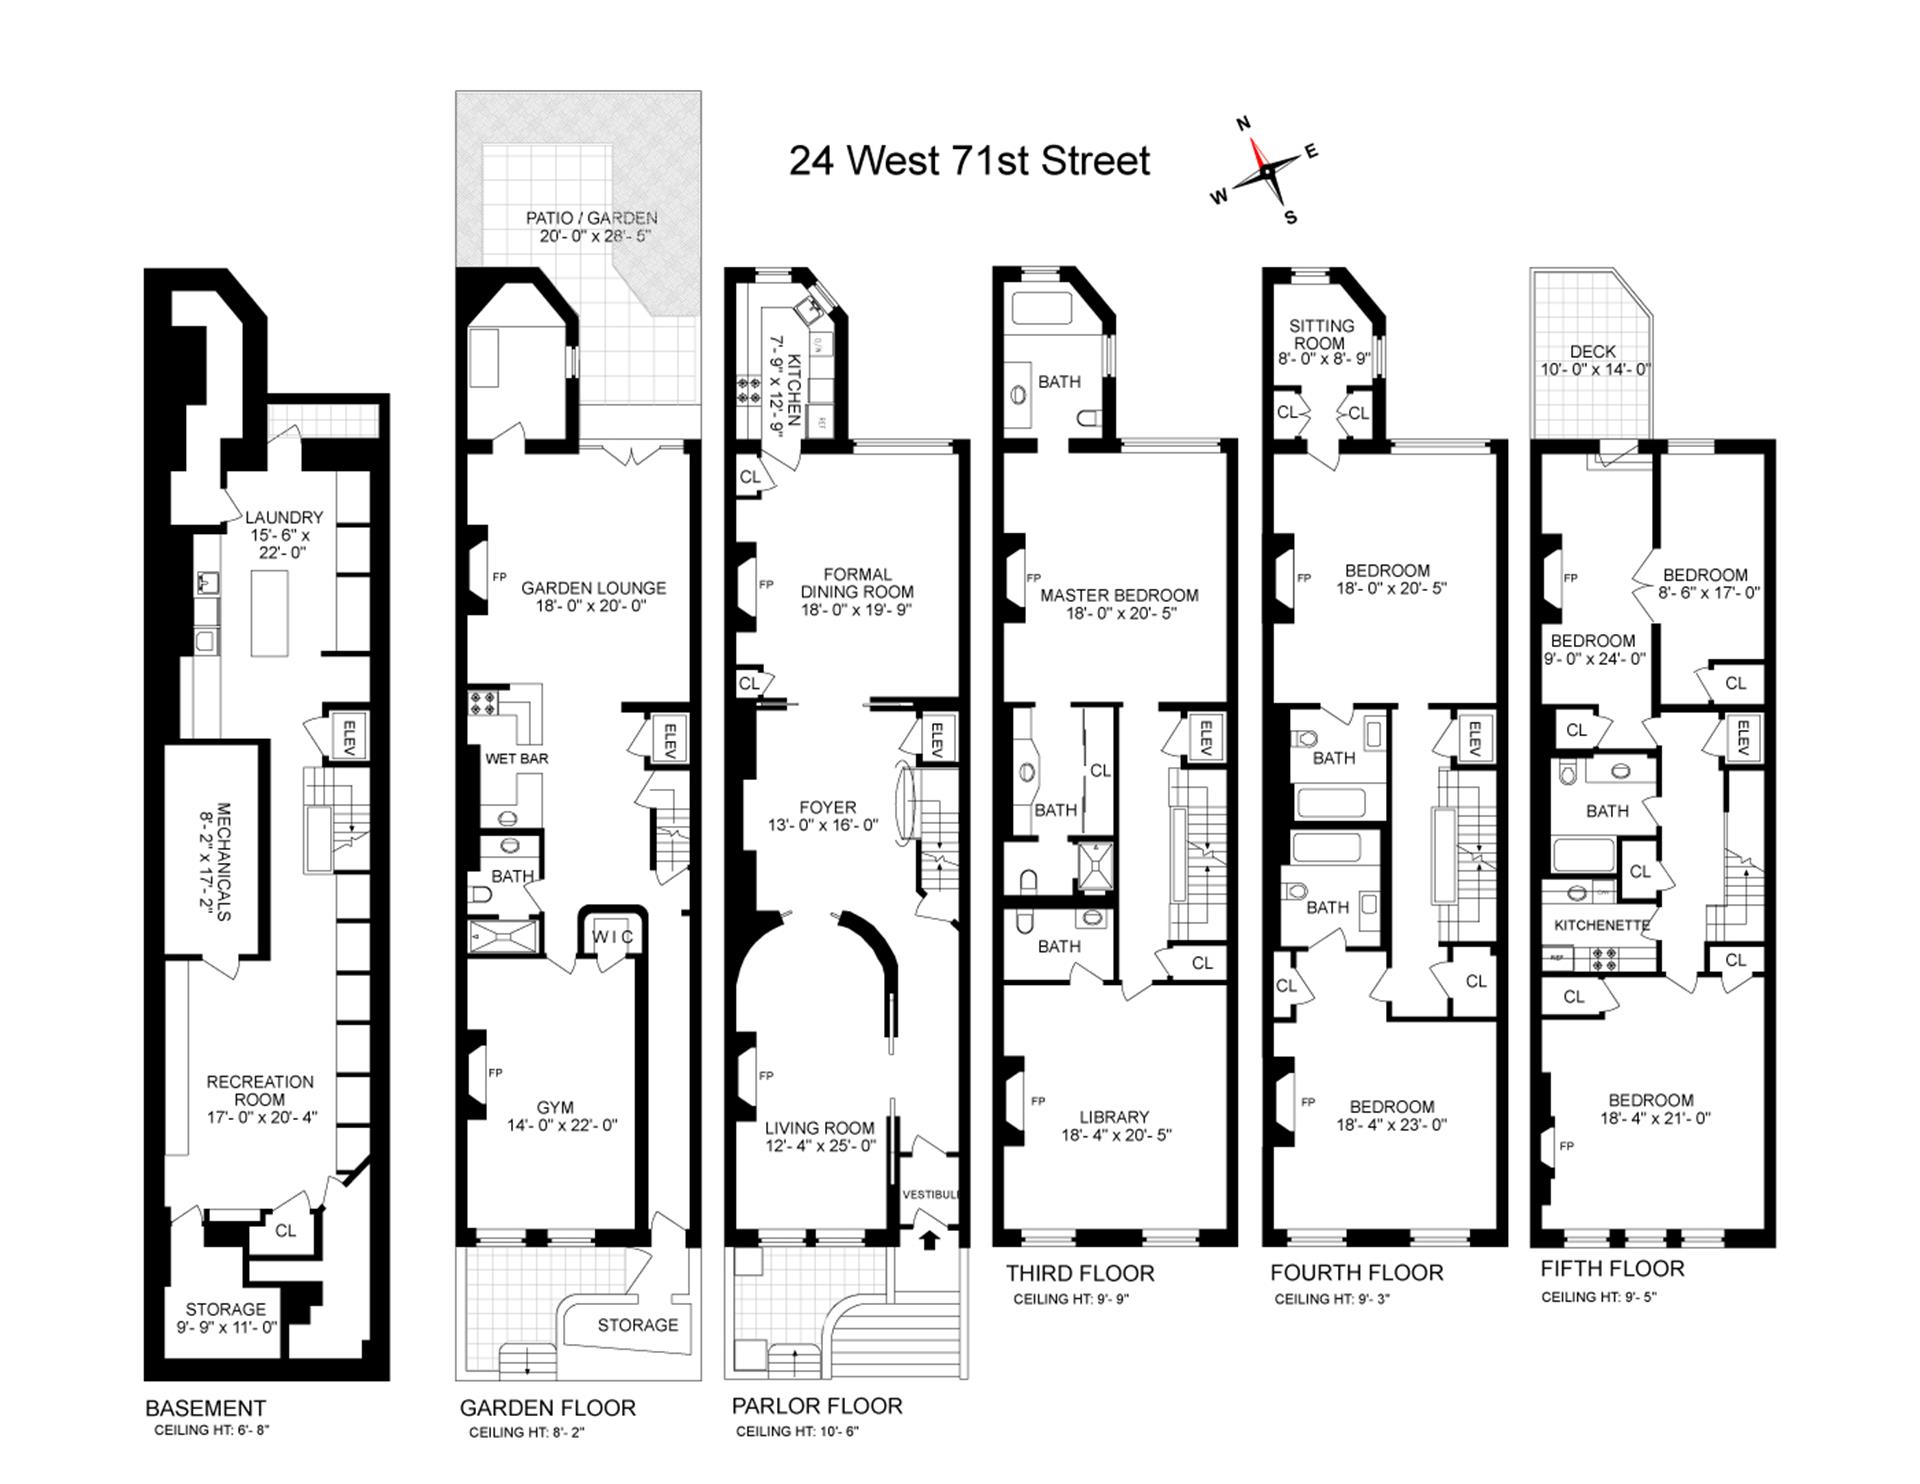 Floor plan of 24 West 71st St - Upper West Side, New York